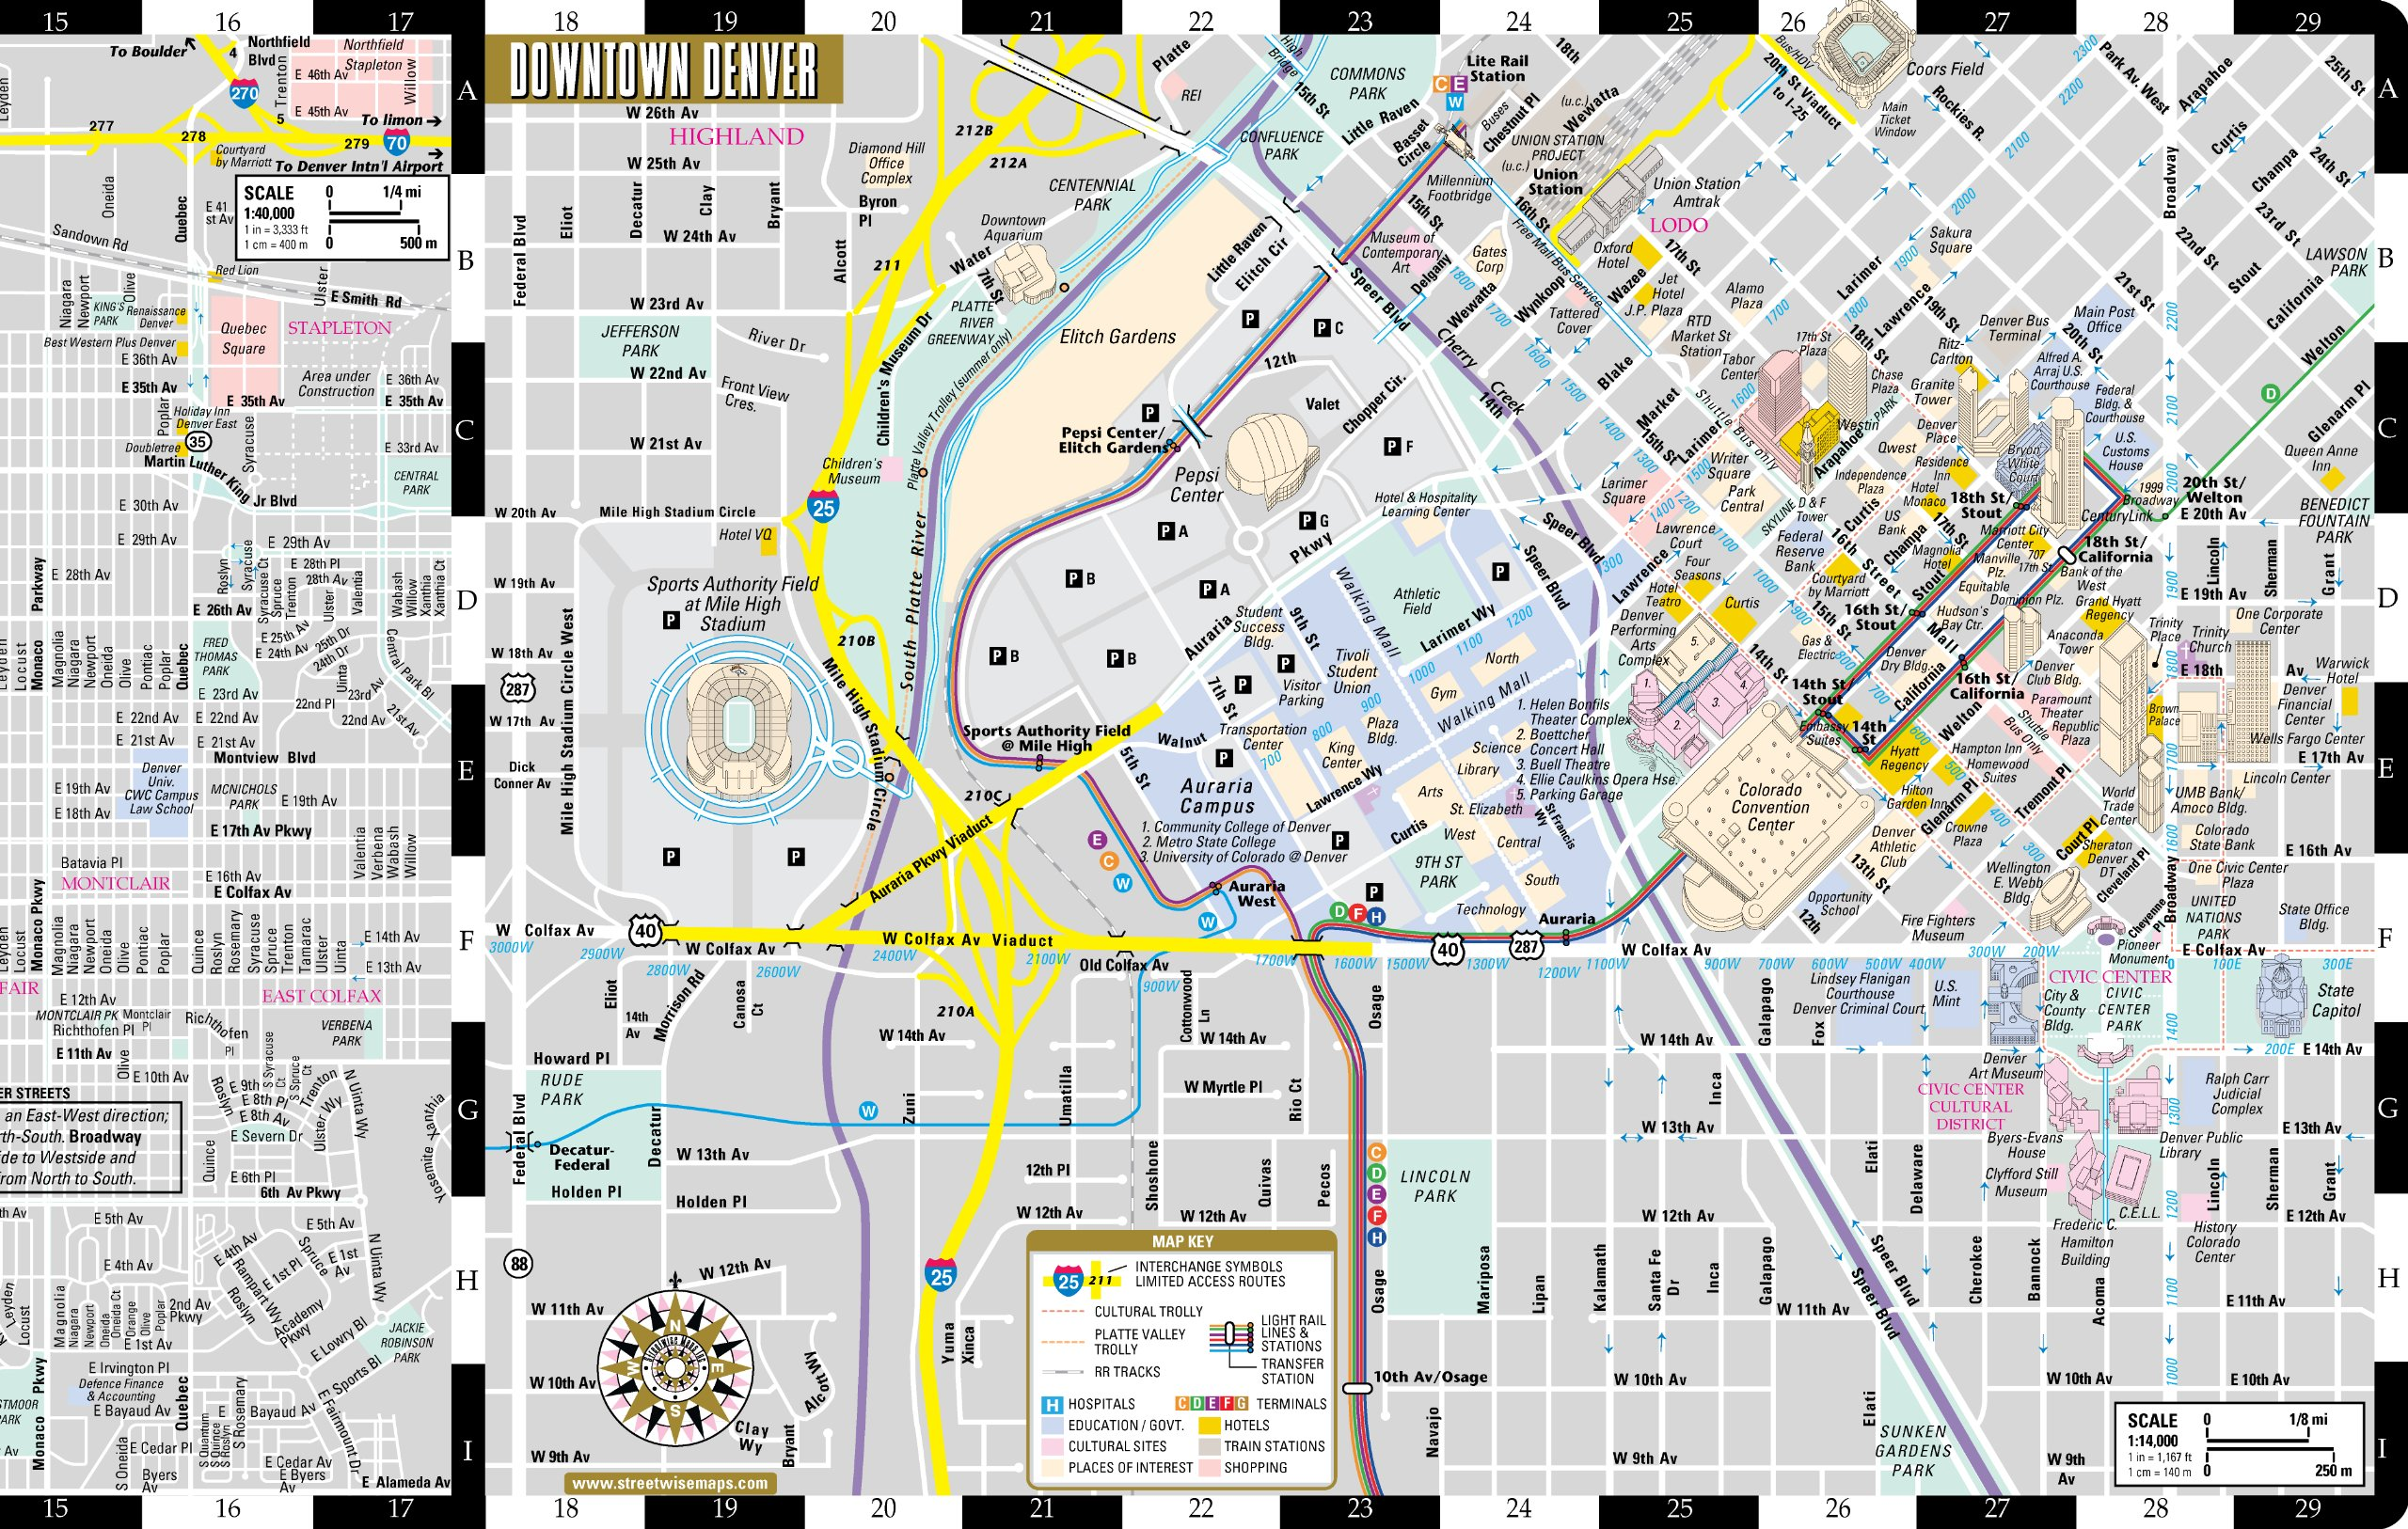 streetwise denver map  laminated city center street map of denver  - streetwise denver map  laminated city center street map of denvercolorado  folding pocket size travel map with light rail map trolleyboulder inset